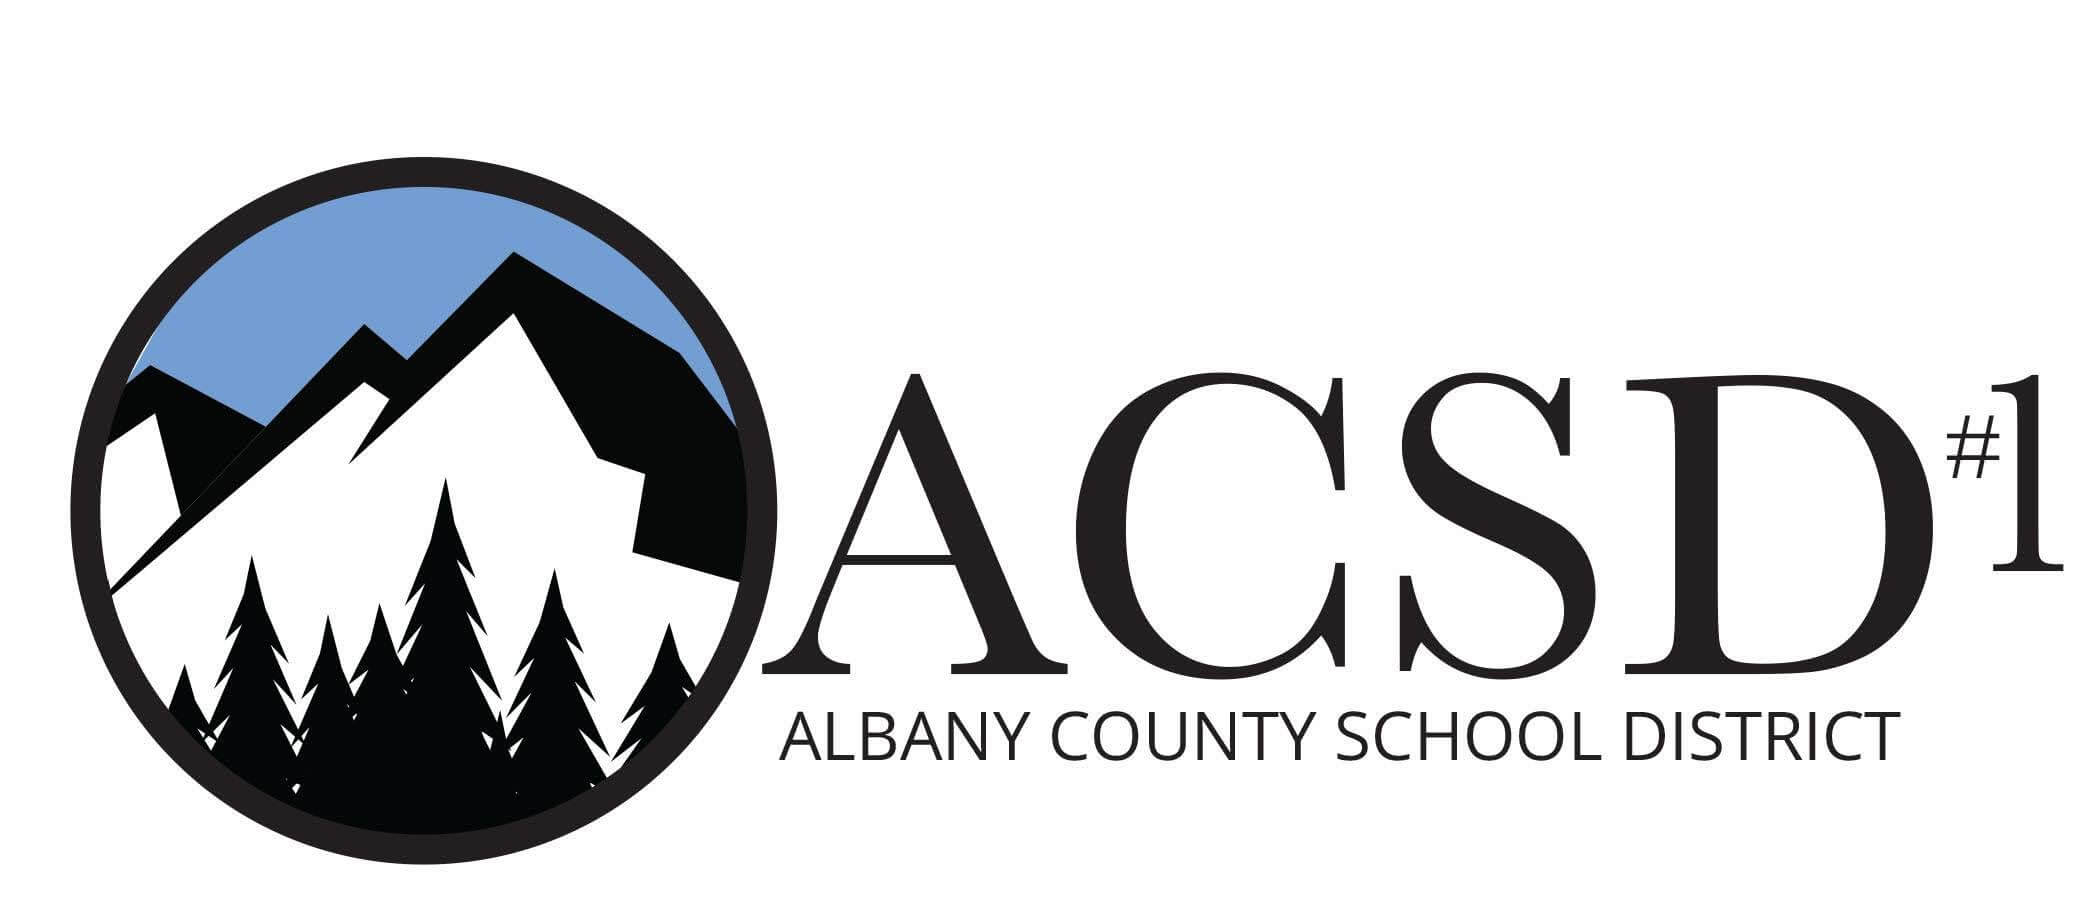 Albany County School District #1